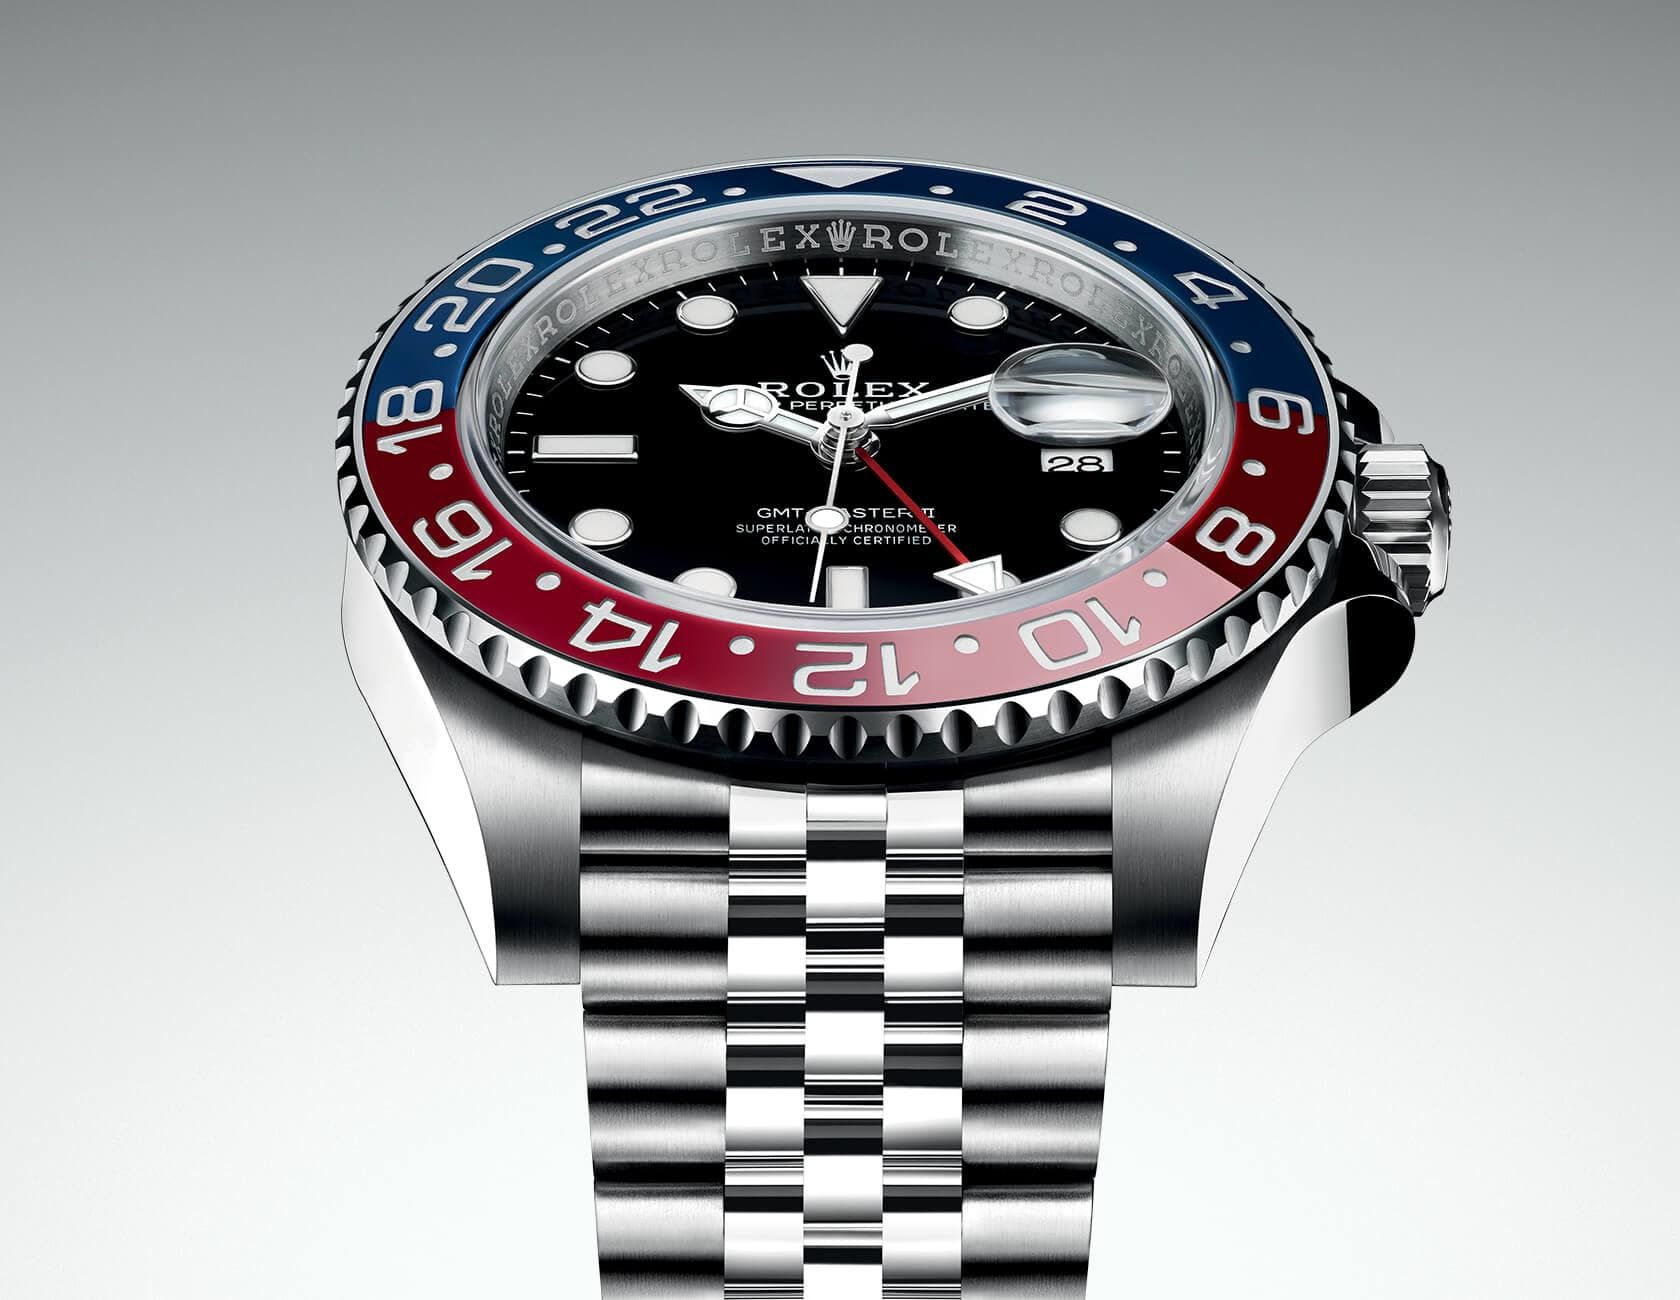 Gmt Coordinated Universal Time